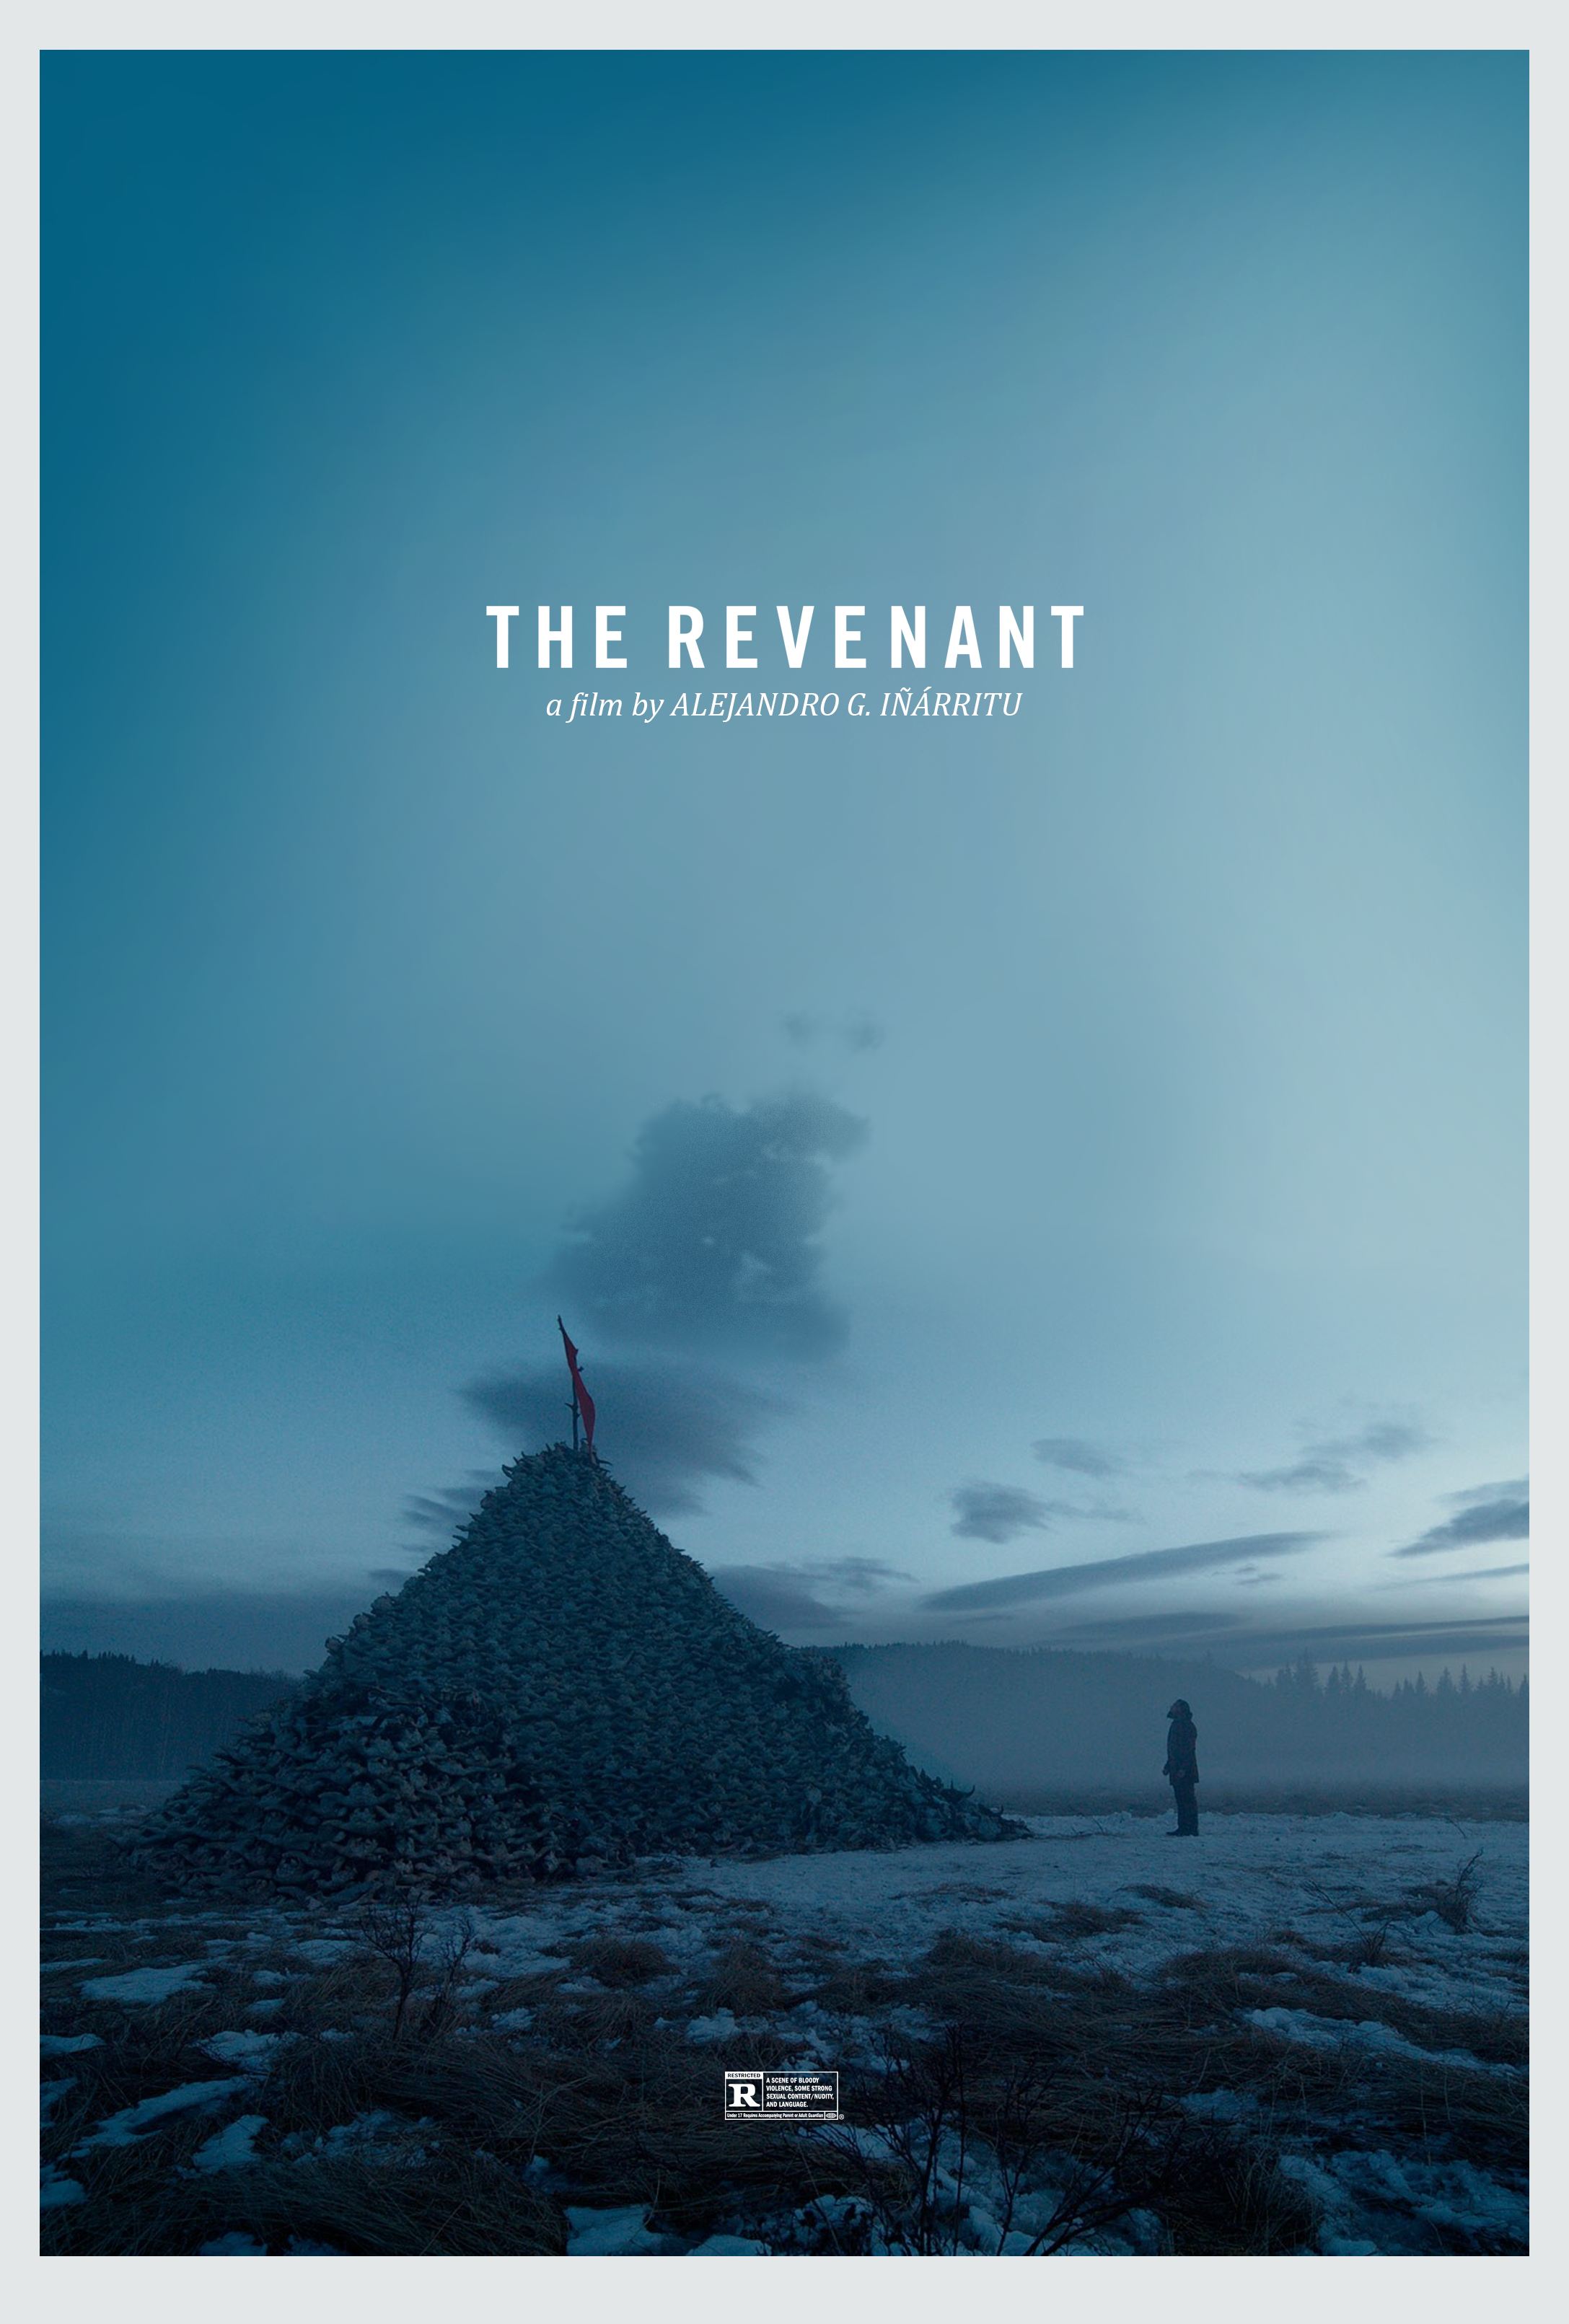 The Revenant 2015 Hd Wallpaper From Gallsourcecom Actors And